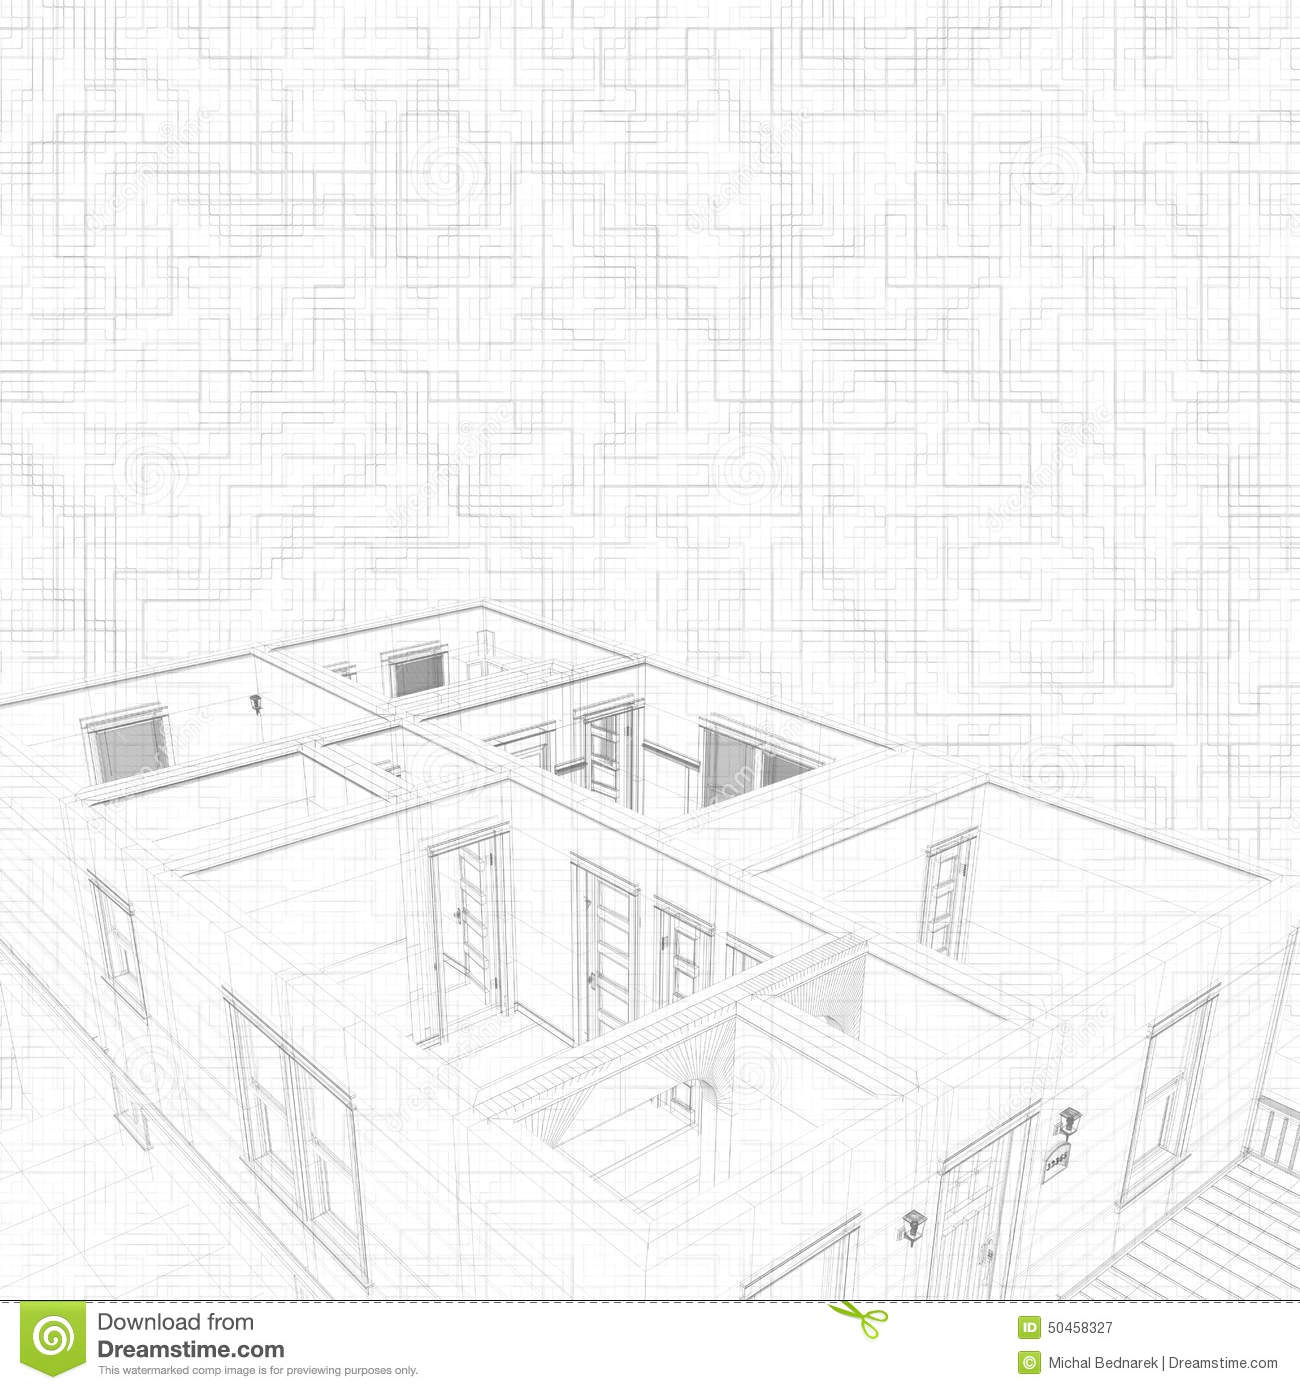 3d Sketch Of House. oncept Of rchitect Project, rchitecture ... - ^